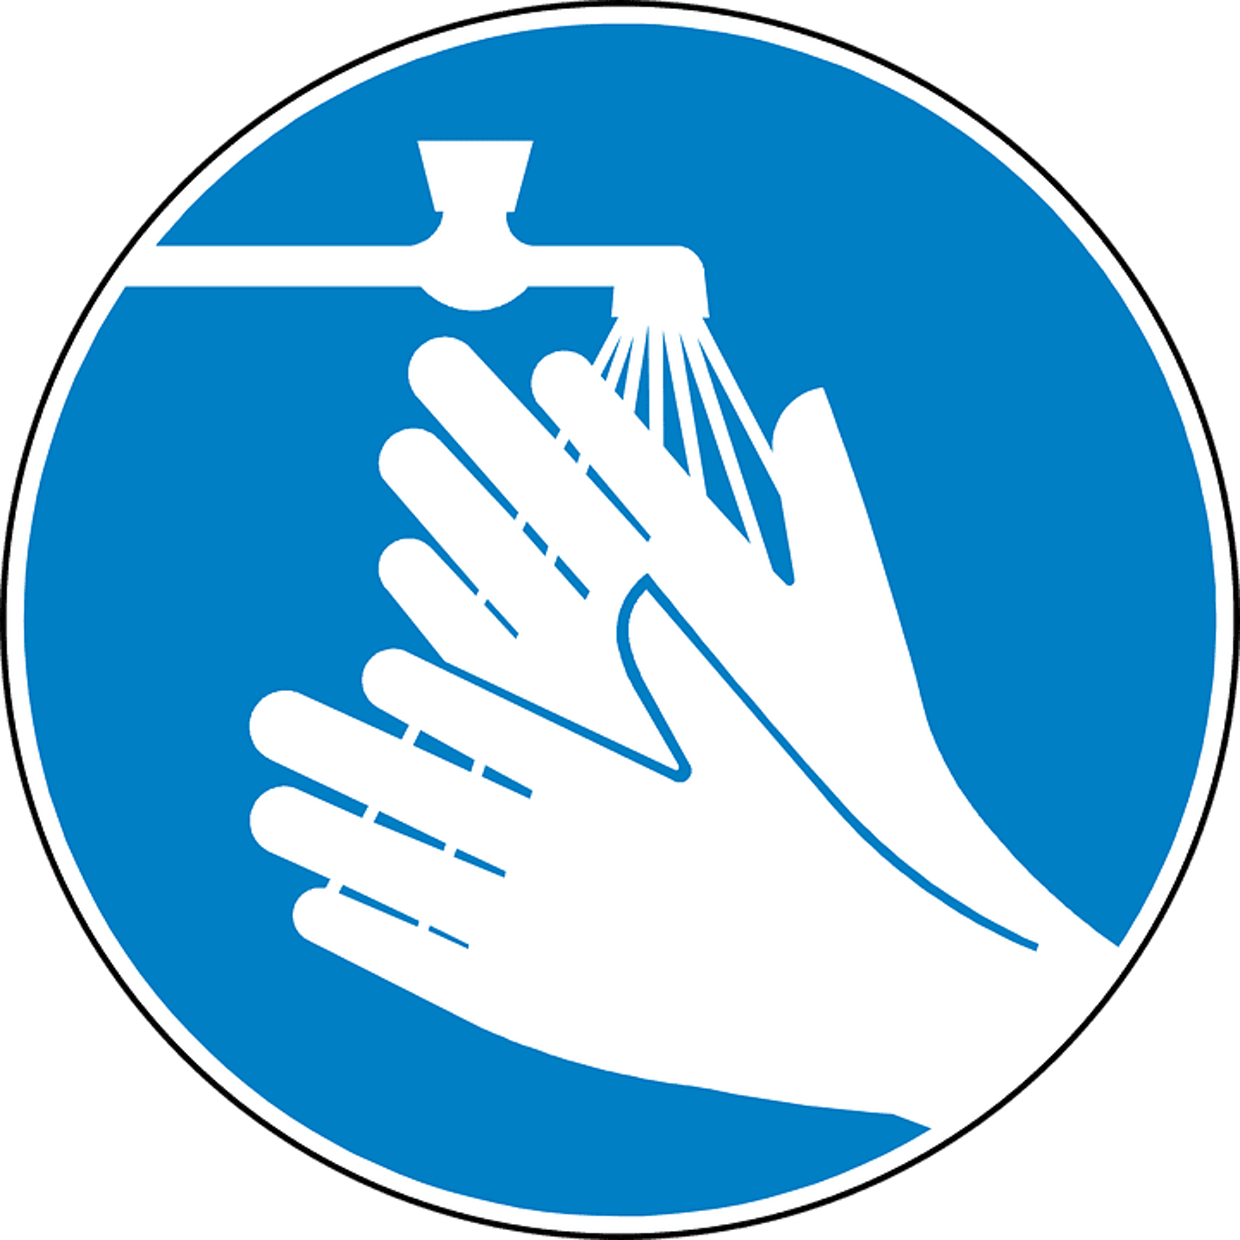 Amid COVID-19, several renowned companies are contributing through their CSR activities. I want to know has any company recently stepped up to promote good hygiene practices?